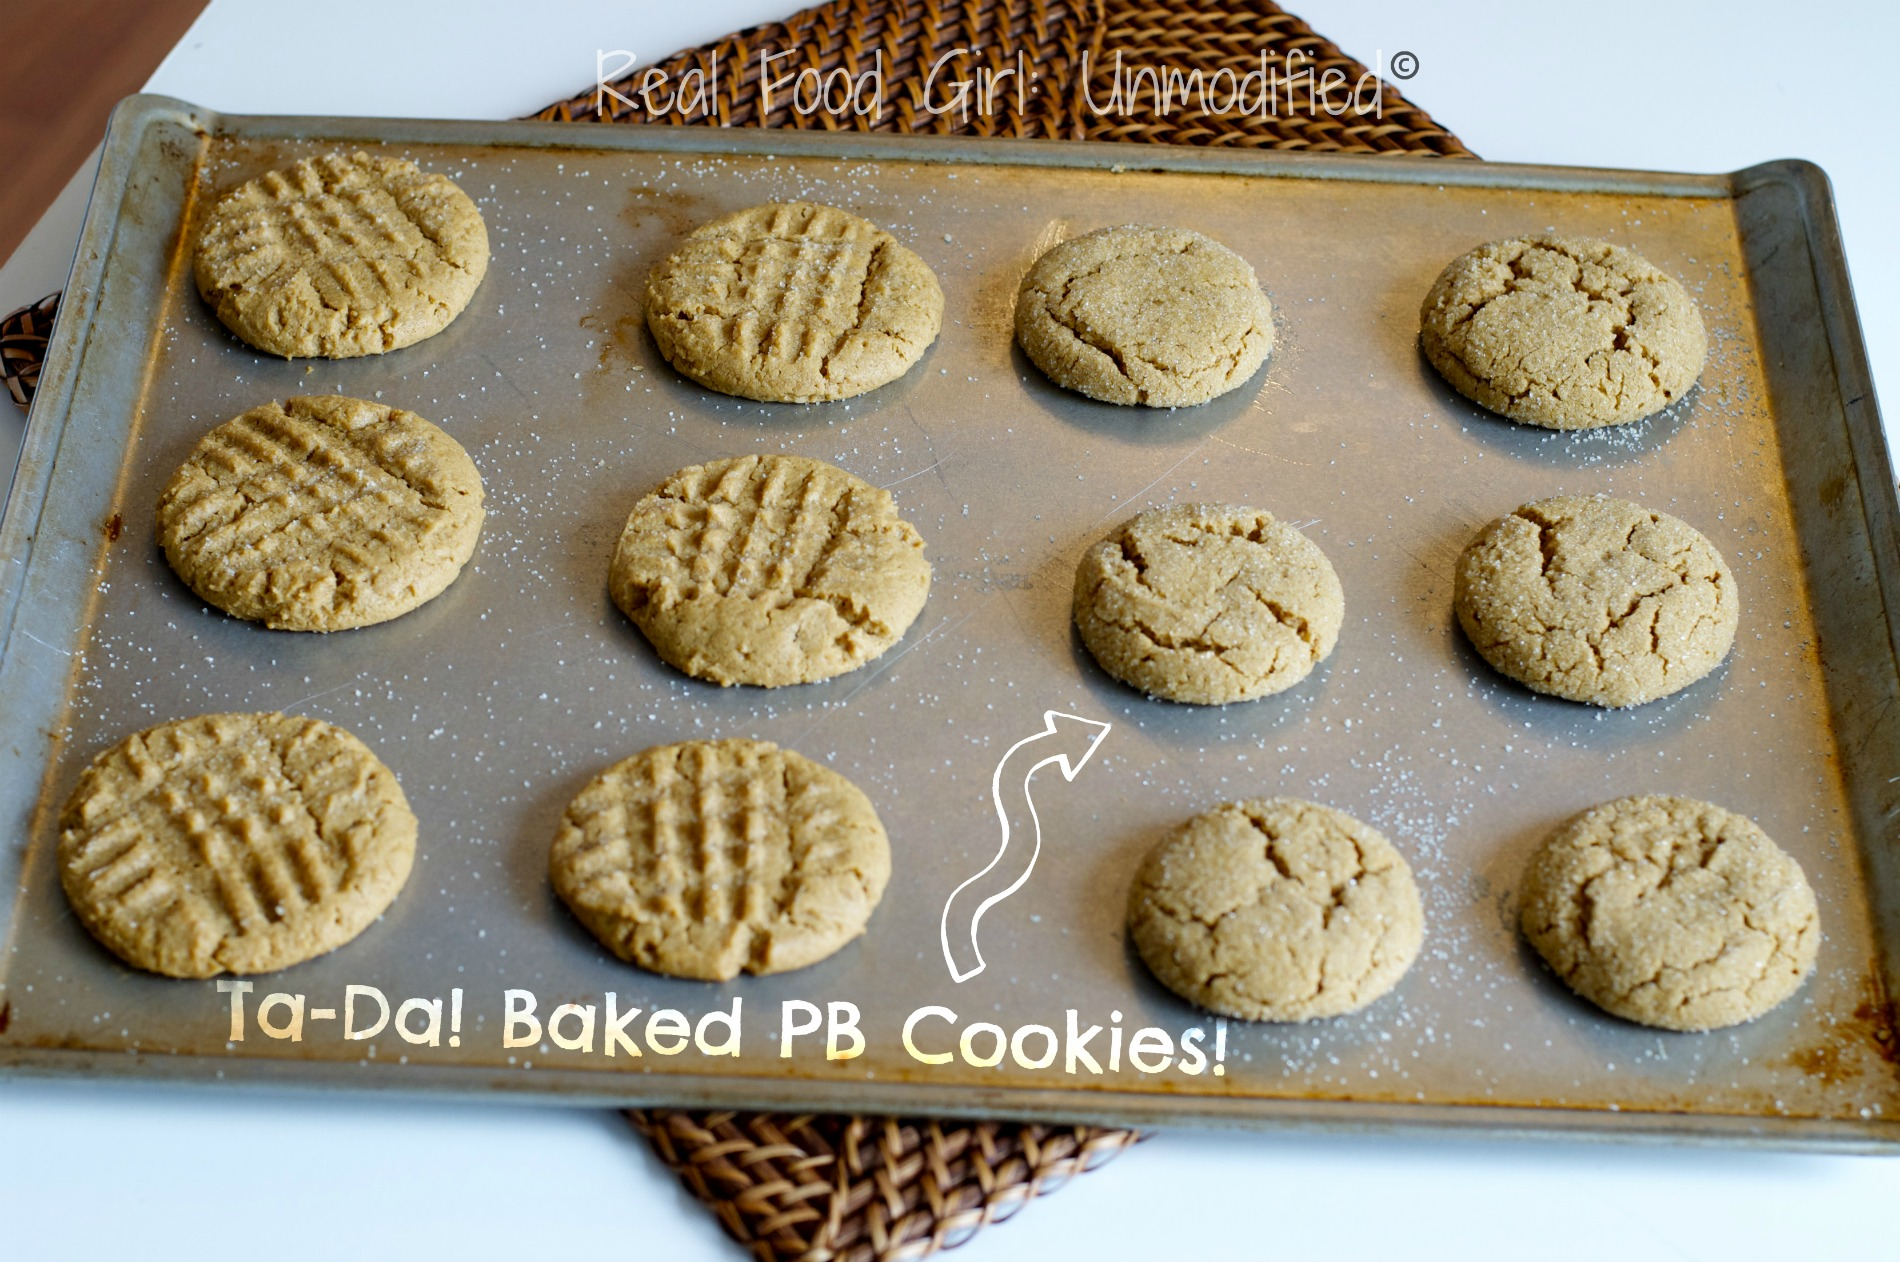 Soft & Chewy Peanut Butter Cookies. Organic and featured on Real Food Girl: Unmodified